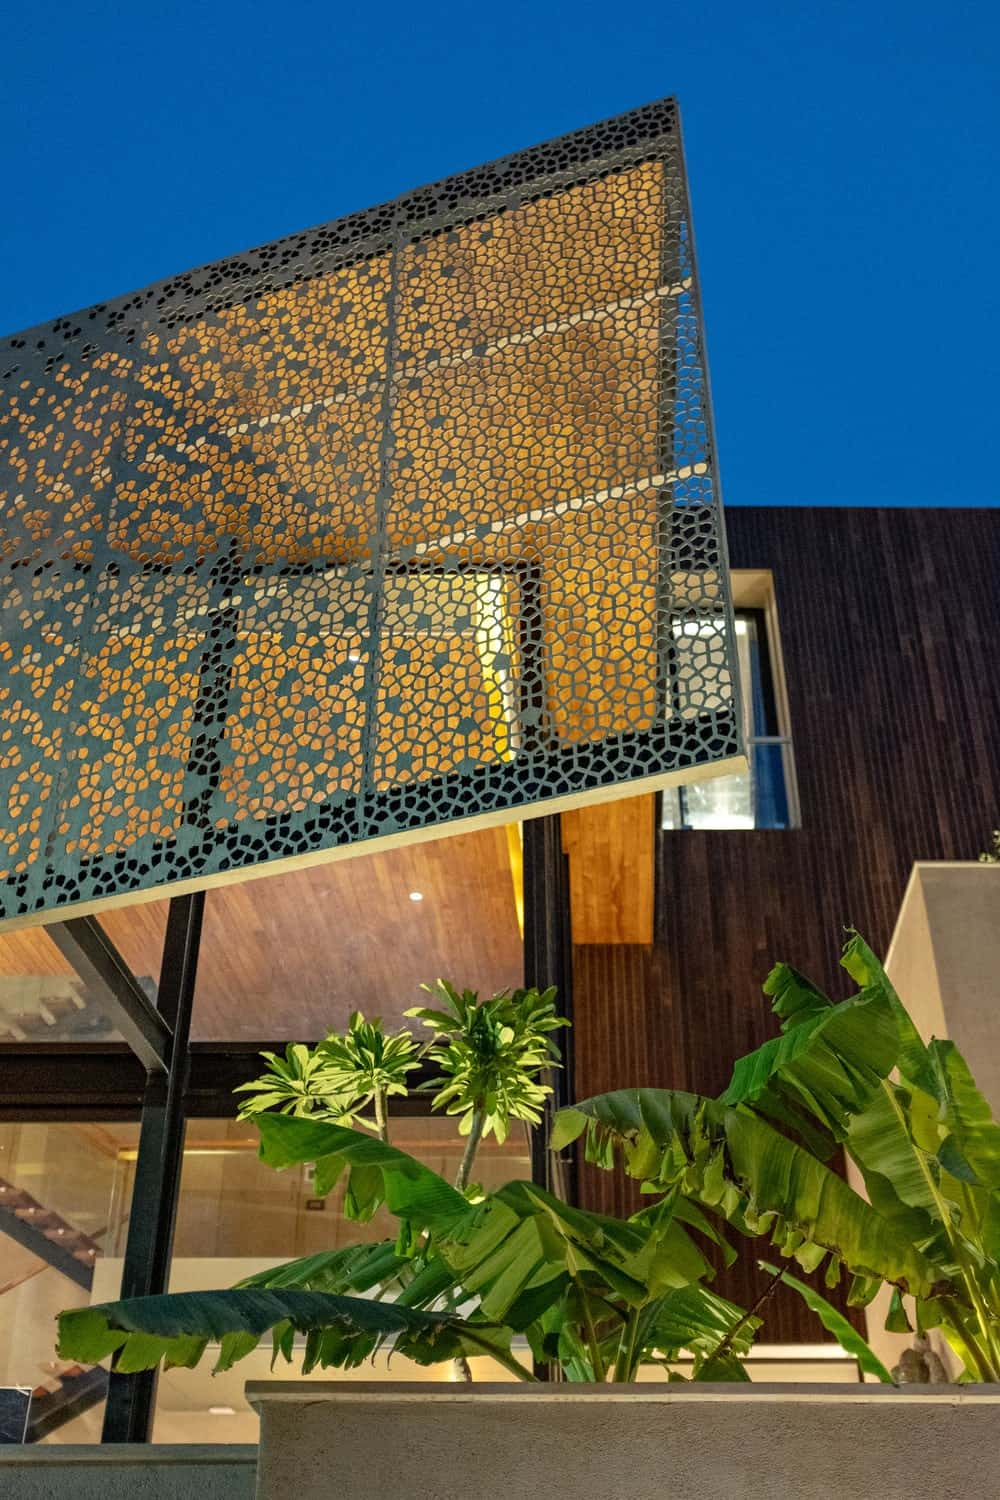 Decorative perforated screen adorning the Chhavi House during night (Oasis in the Thar Desert) designed by Abraham John Architects.